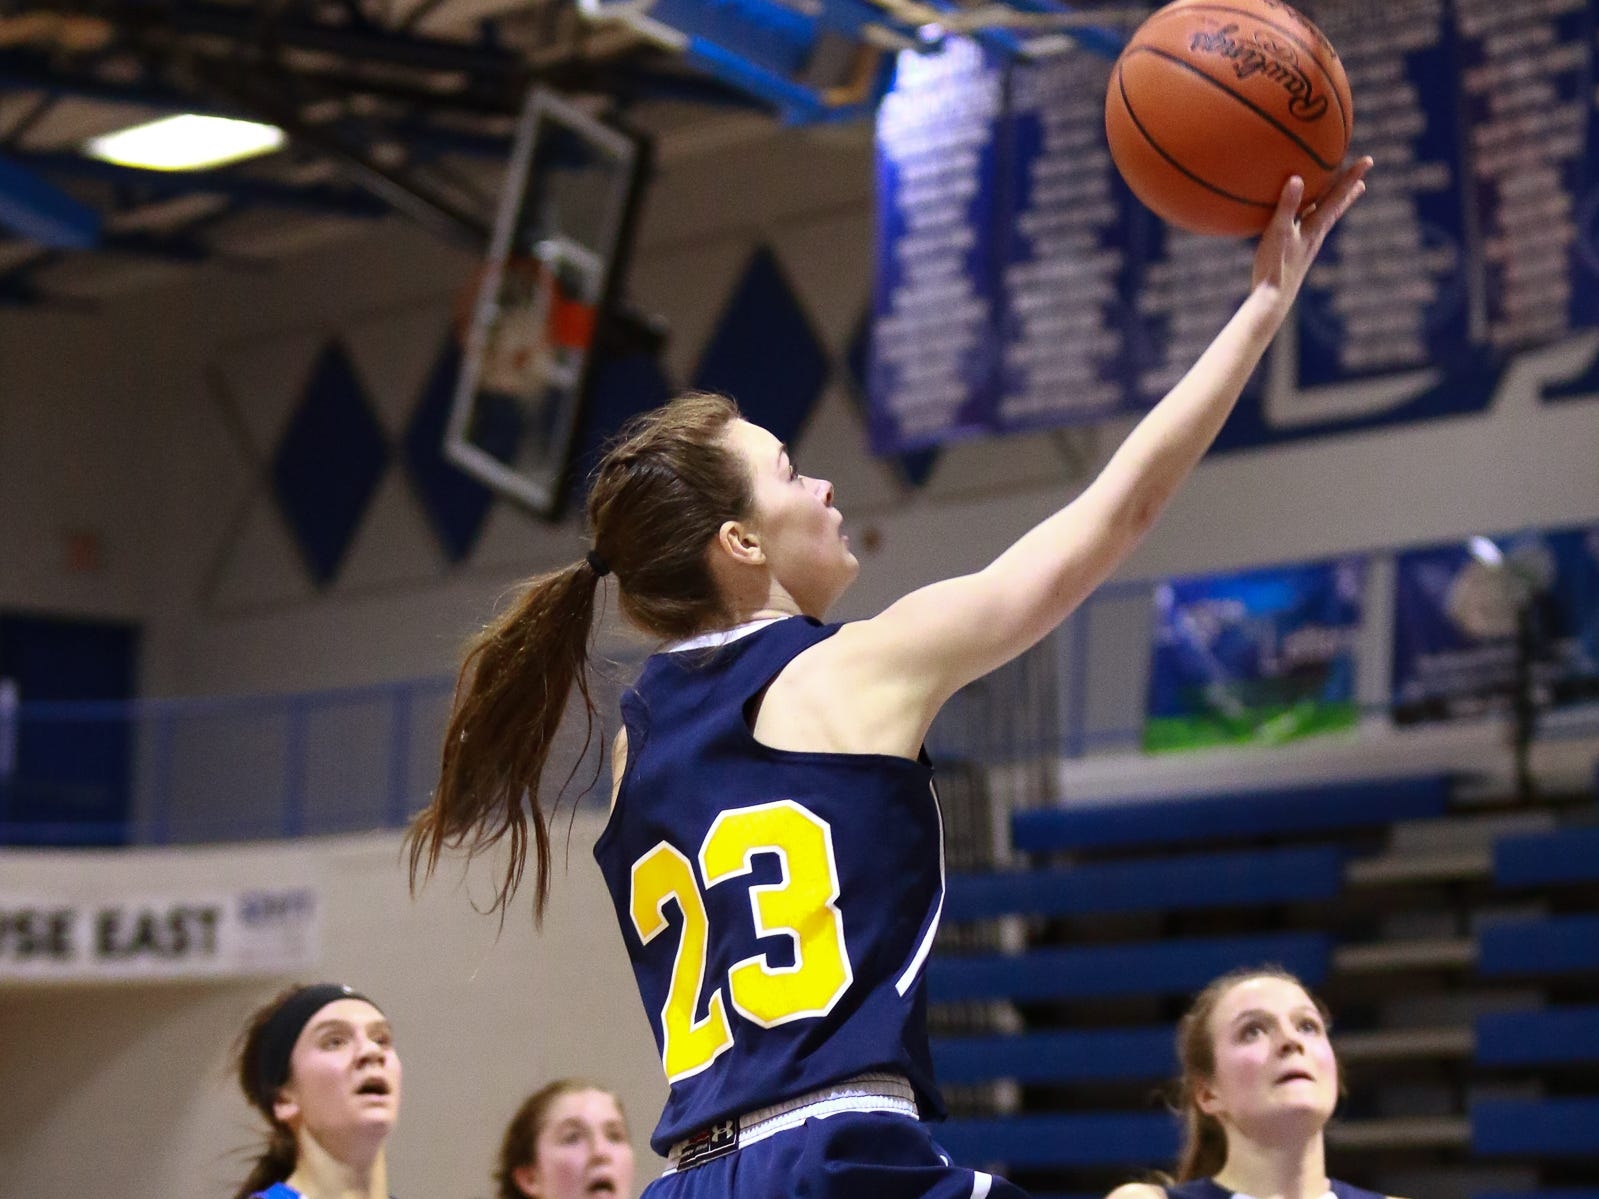 Hartland's Gracey Metz drives to the basket in a 50-46 victory over Walled Lake Western in the Division 1 regional championship game at Lakeland on Wednesday, March 13, 2019.